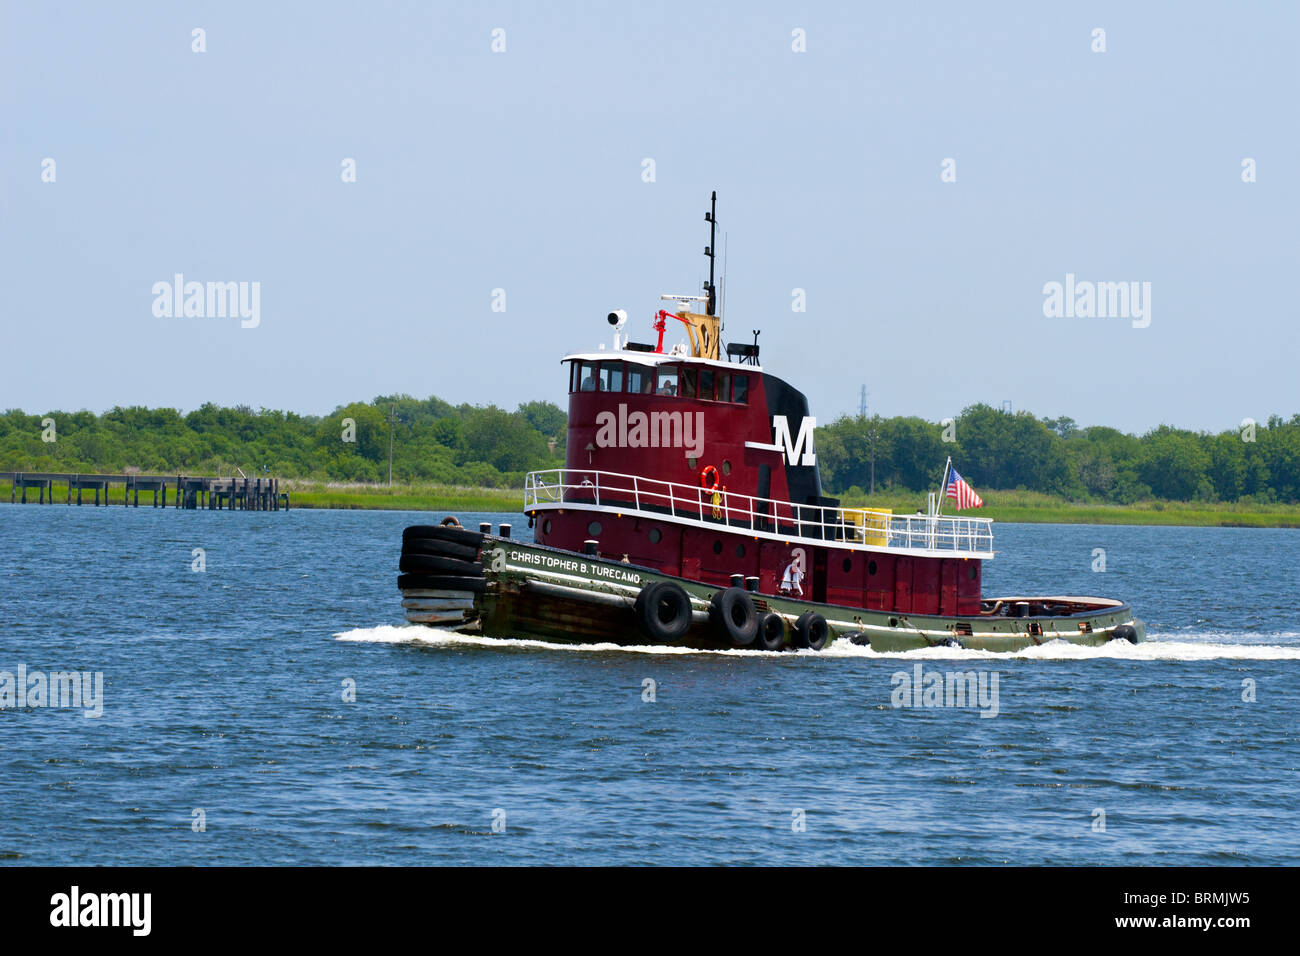 Moran company tugboat passing by on the Cooper River in the